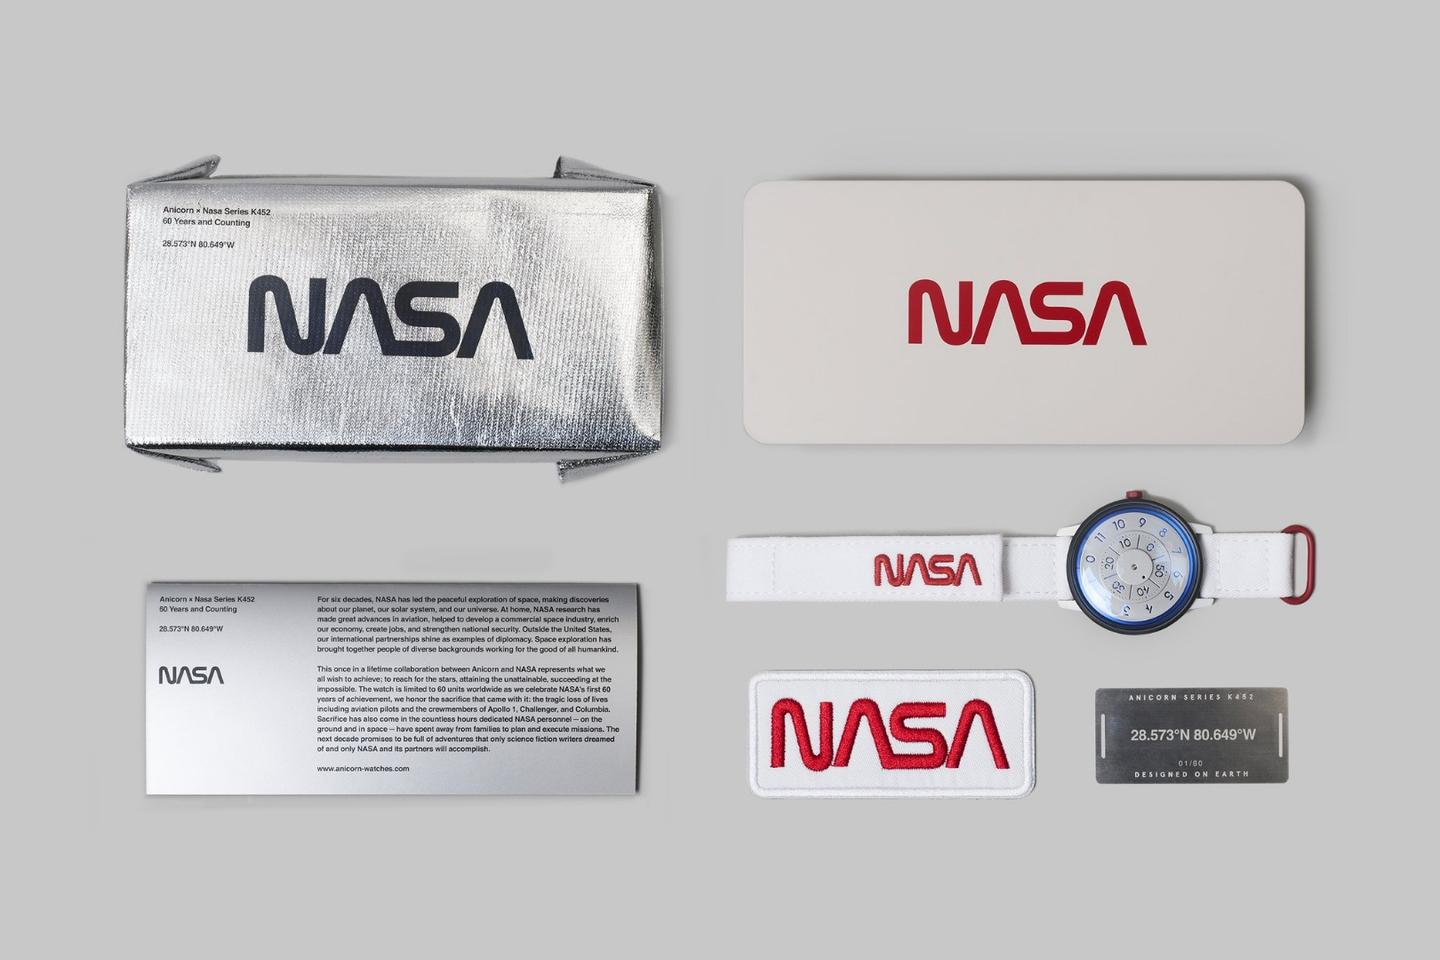 The Anicorn × NASA package